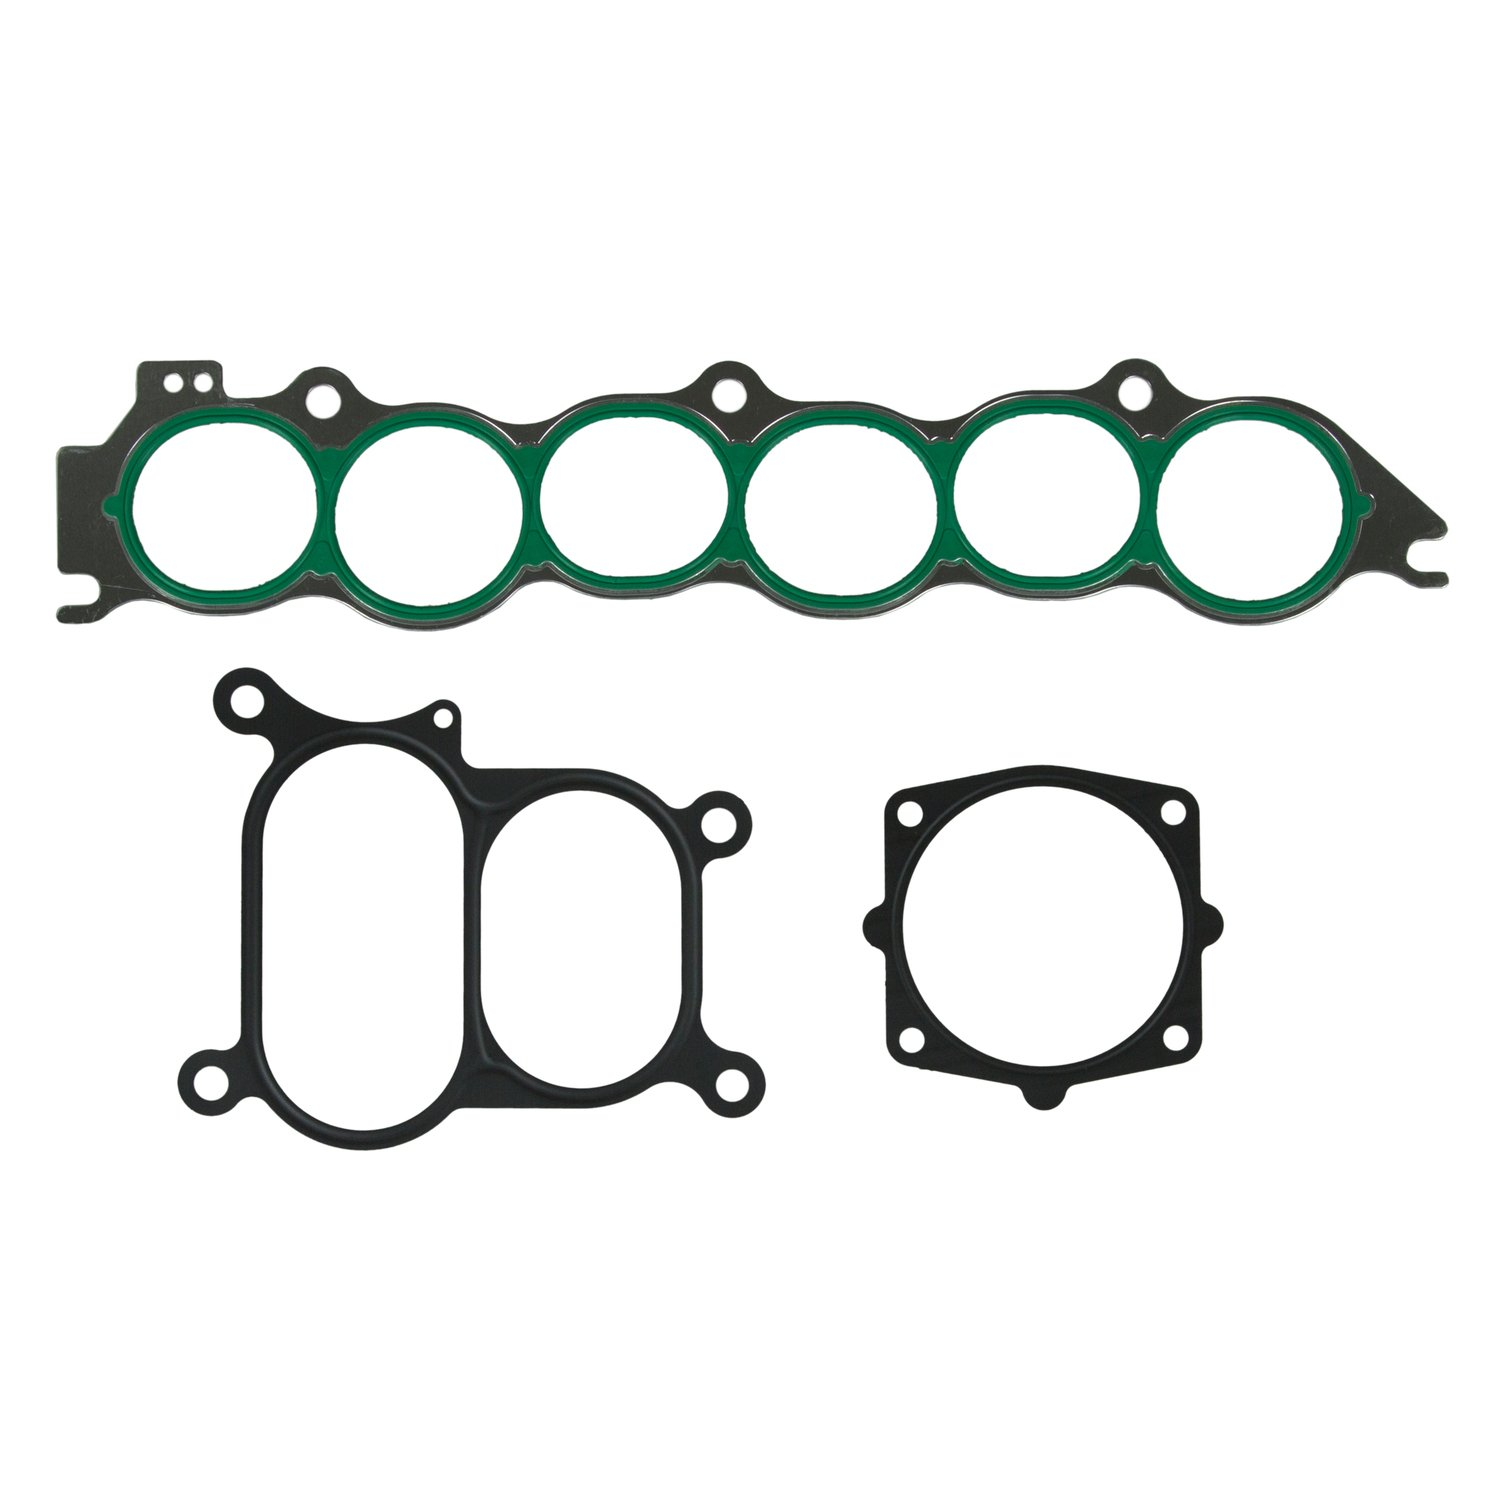 Fel-Pro MS 96471 Upper Intake/Plenum Gasket Set